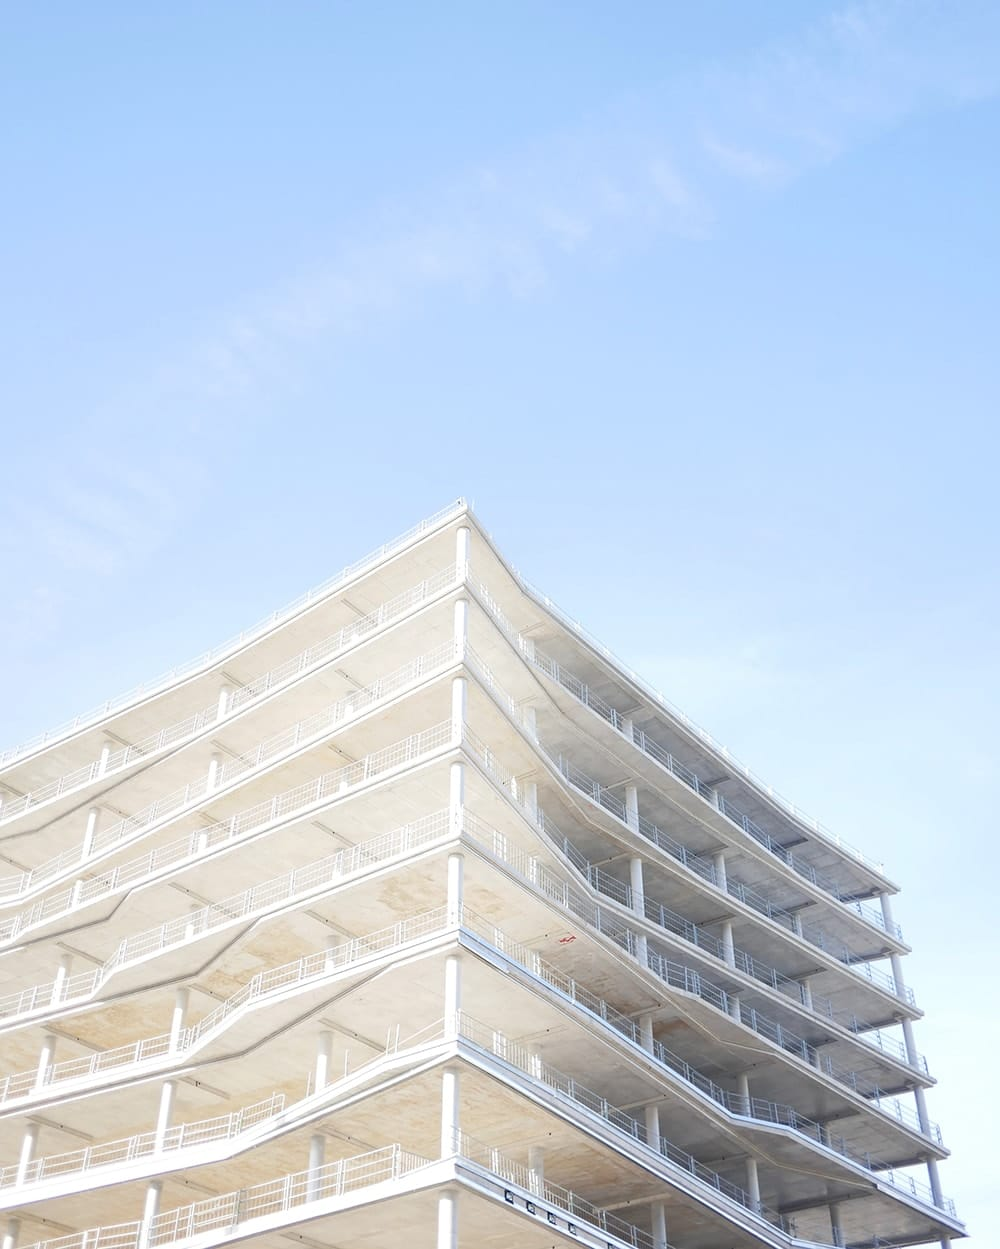 Minimalistic structure of a construction on a sunny day. Berlin